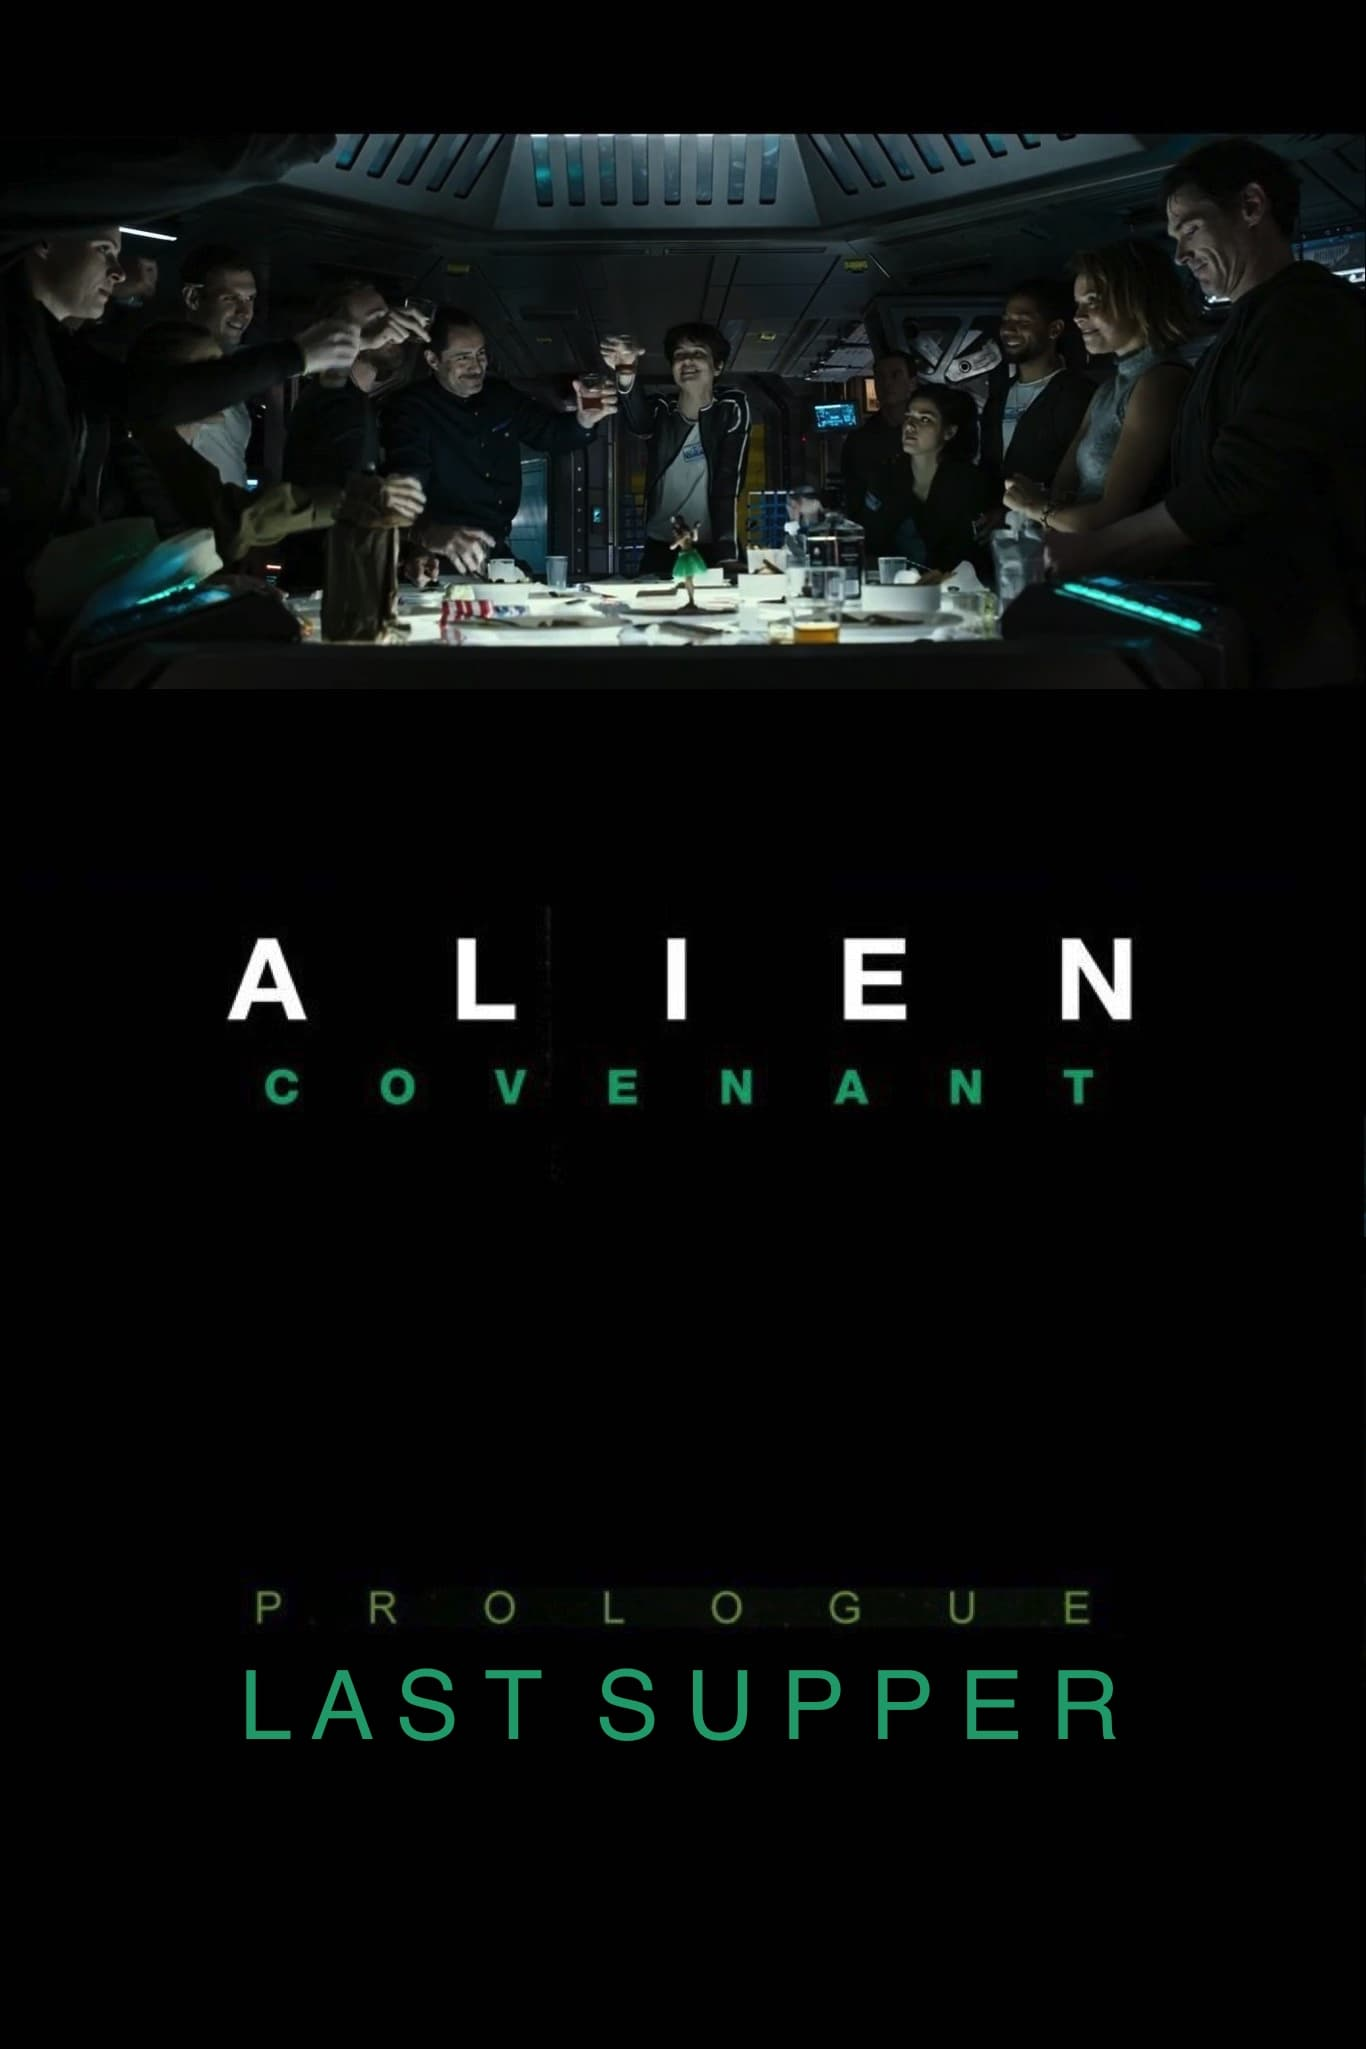 Alien: Covenant Prologue - Last Supper (2017)